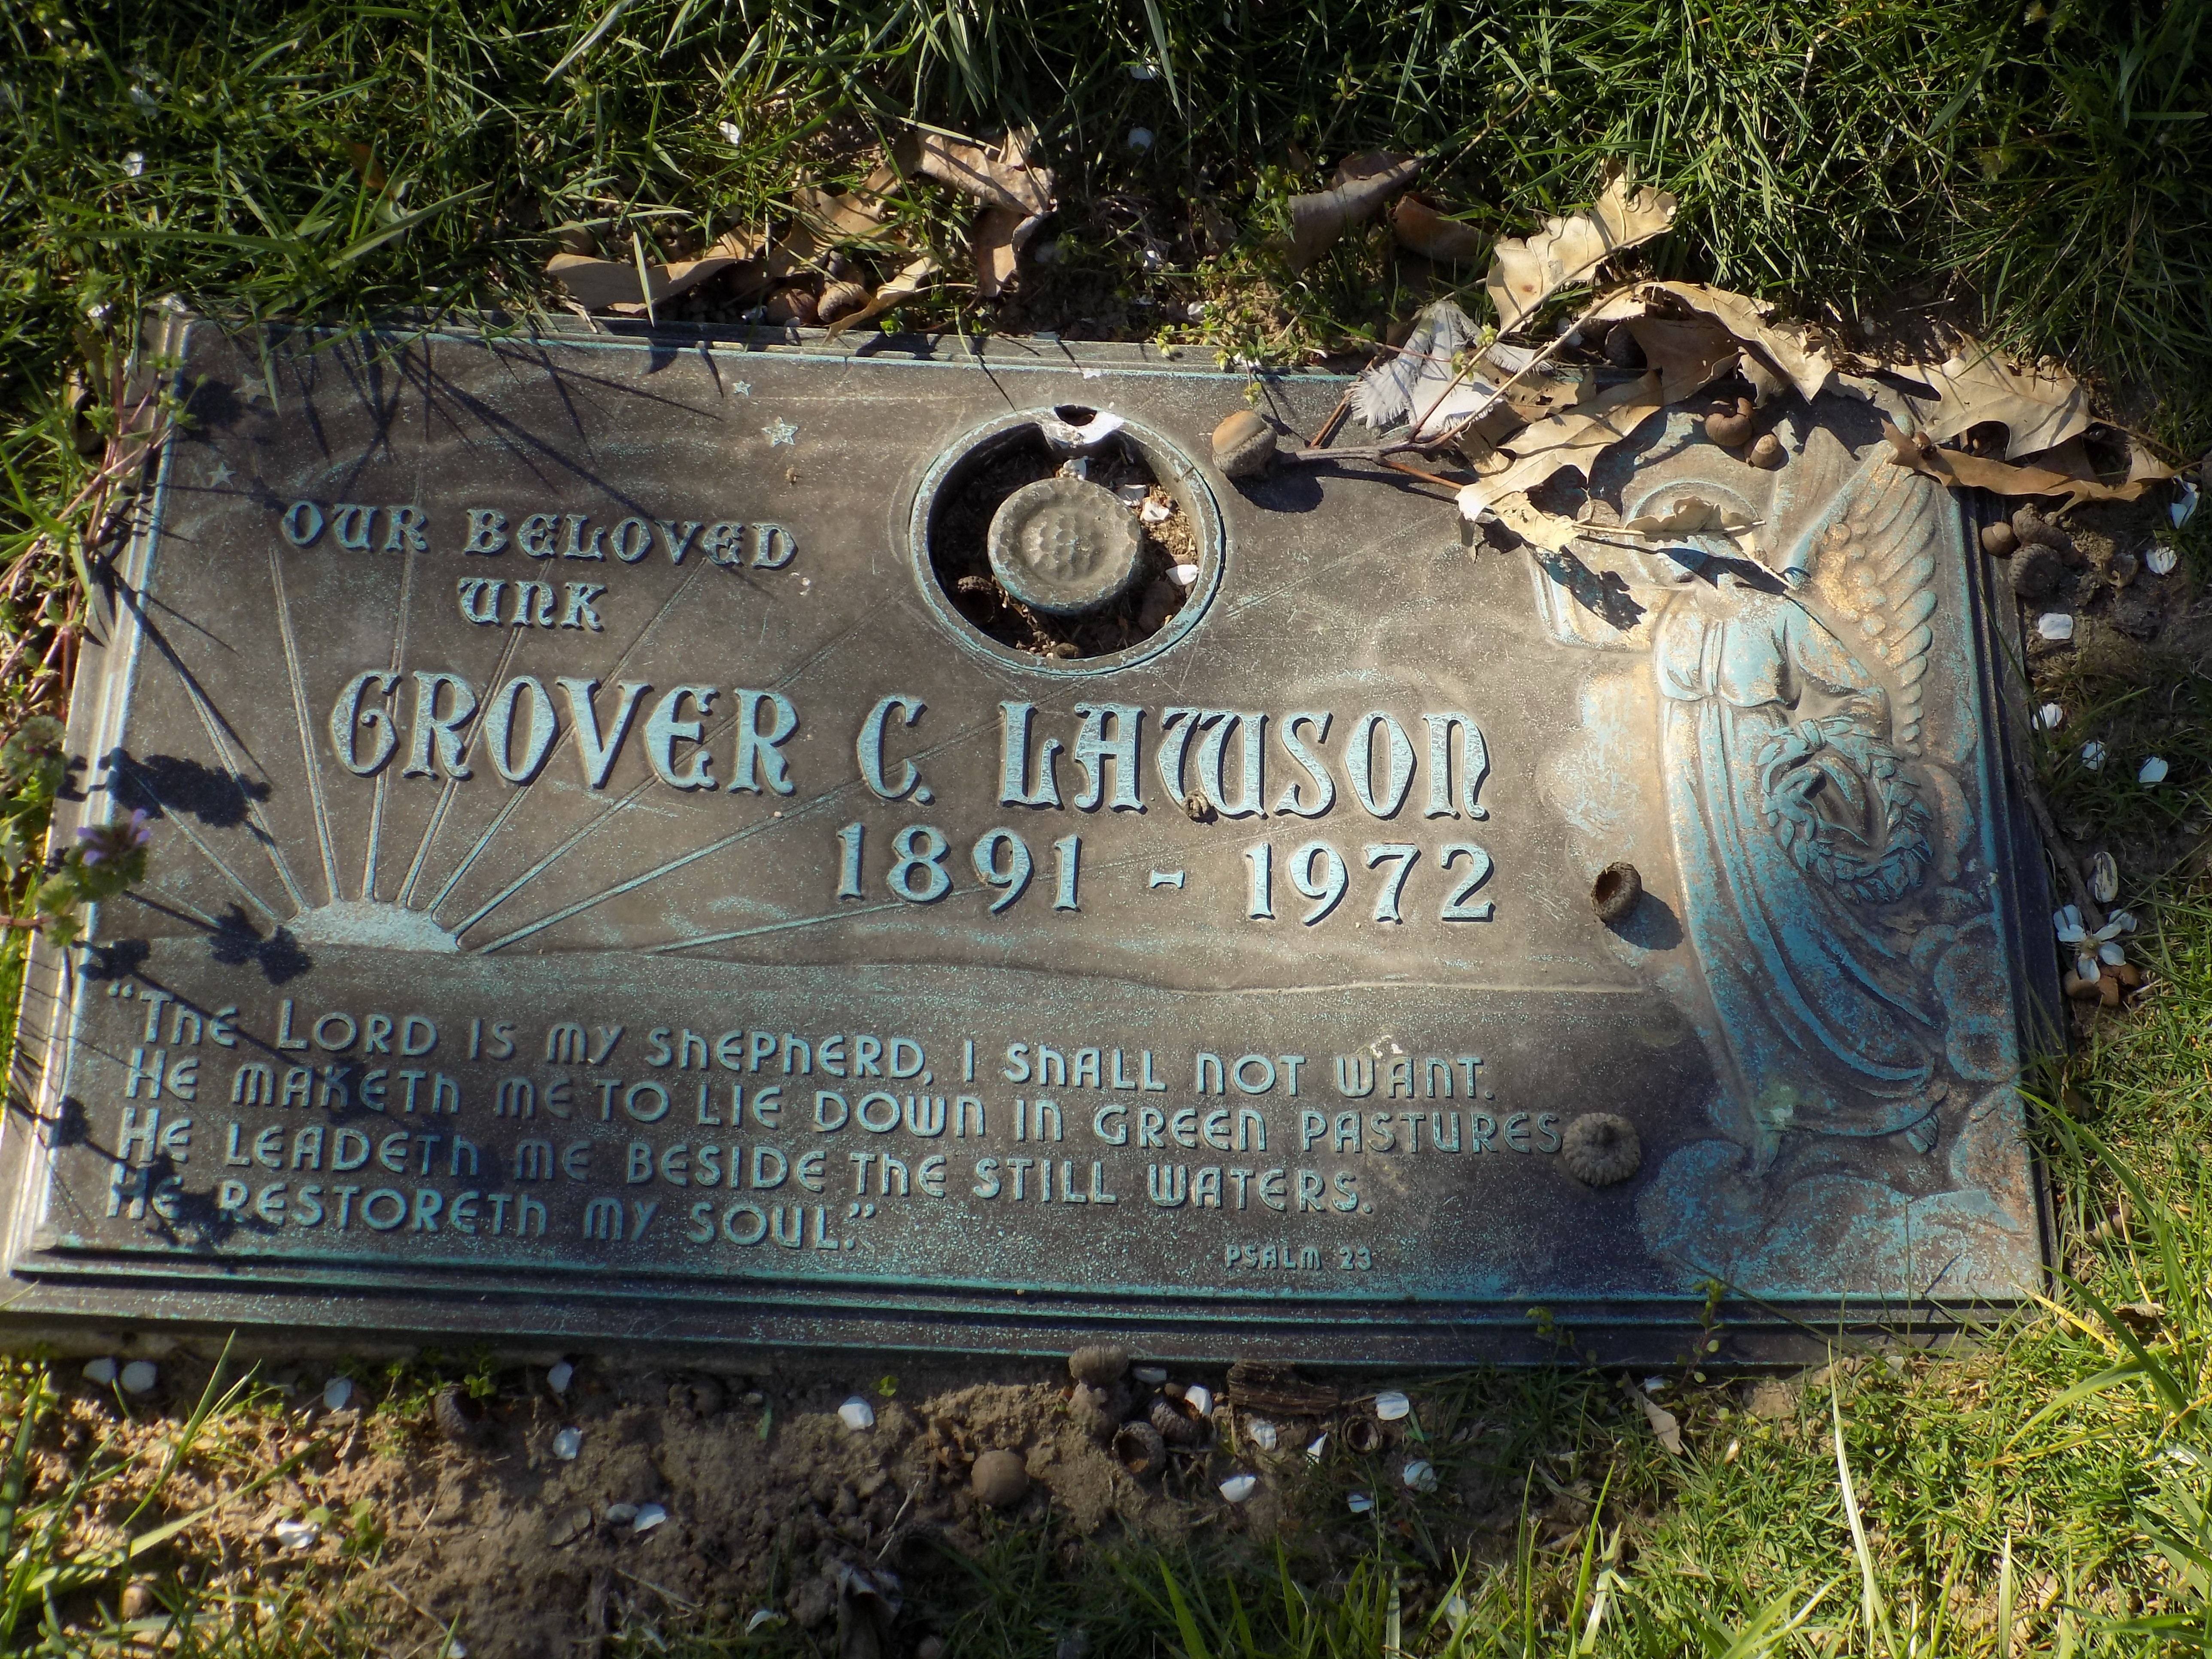 Grover Cleveland Lawson